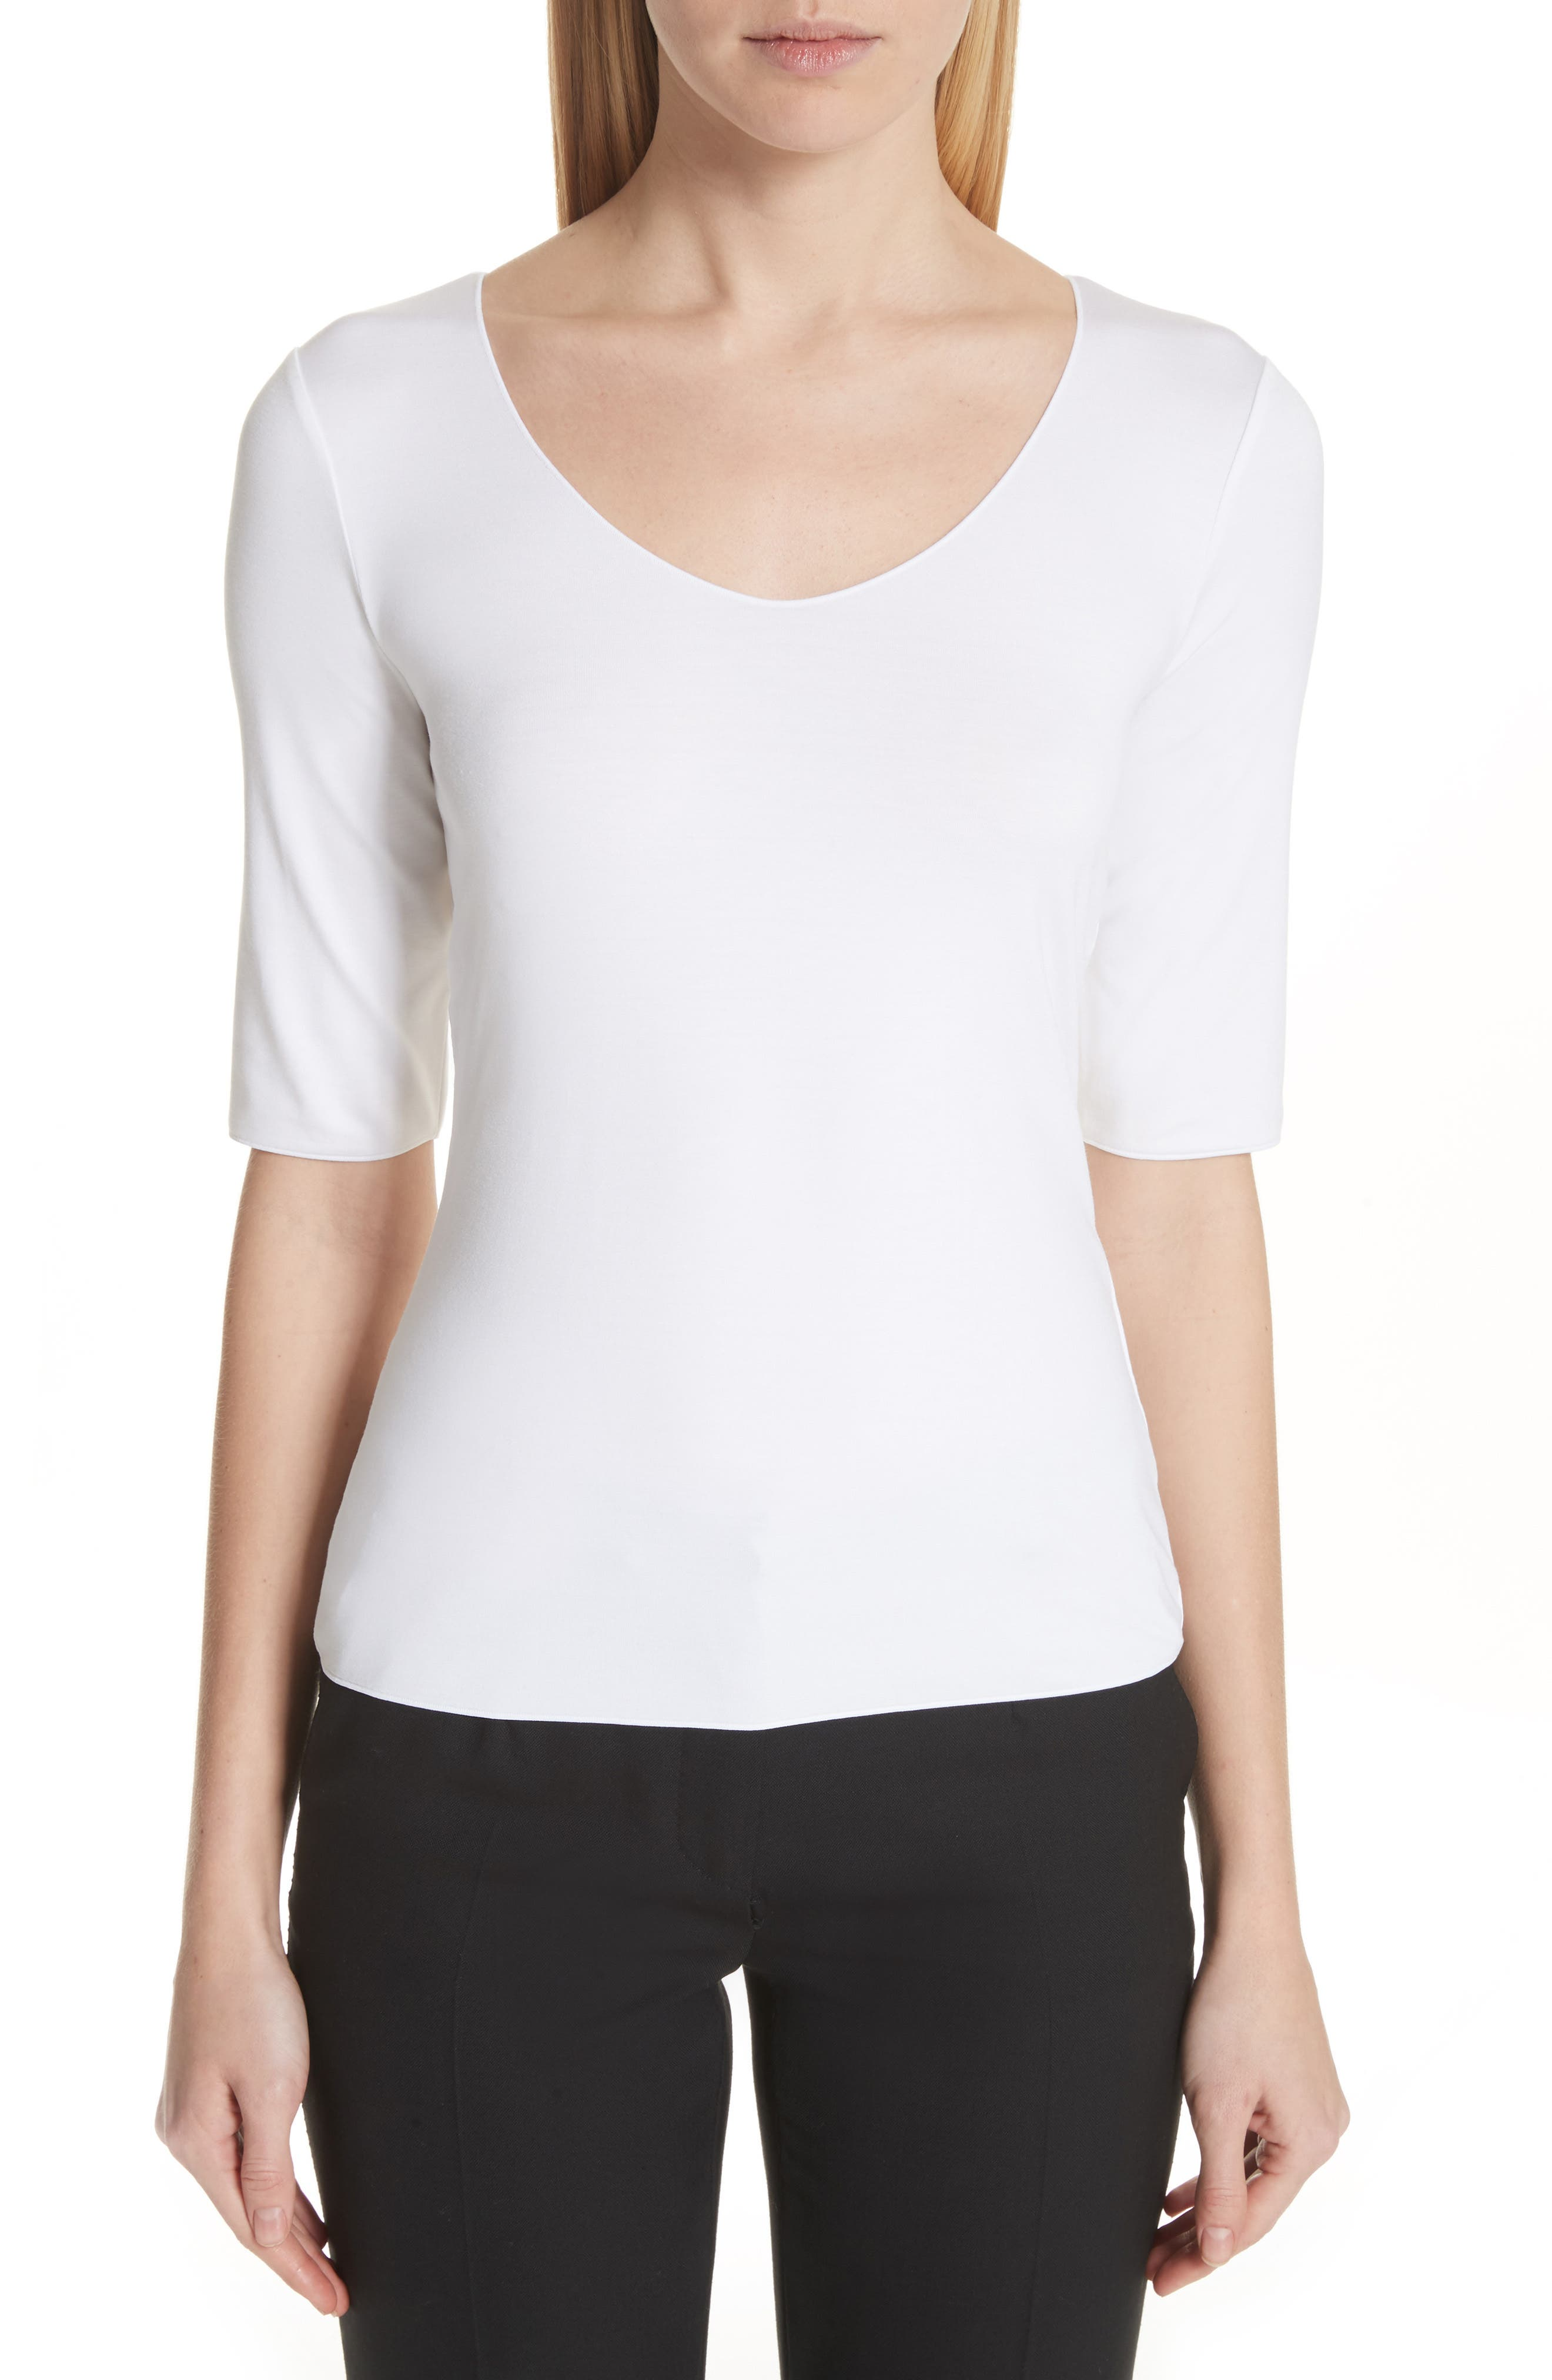 Alternate Image 1 Selected - Emporio Armani Stretch Knit Top